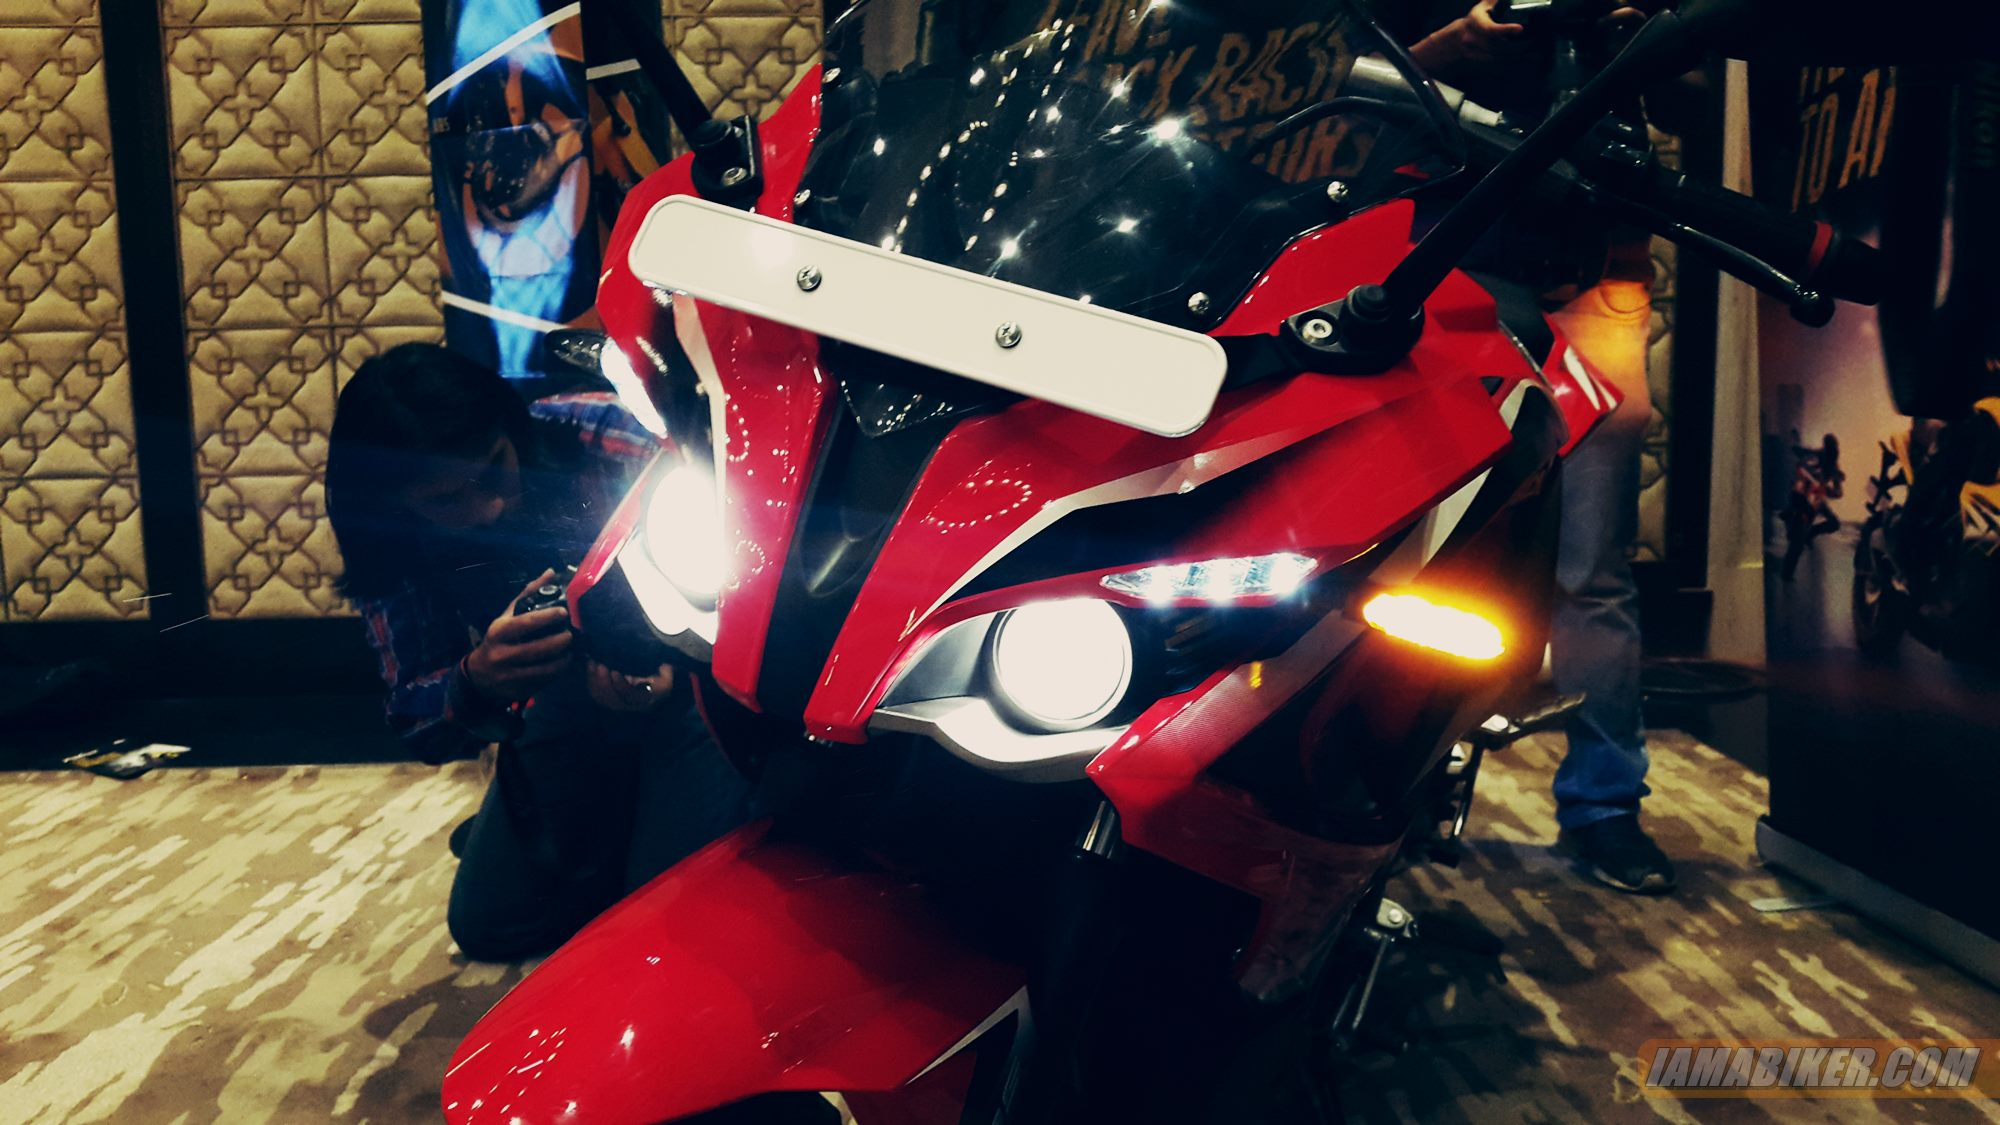 Pulsar RS 200 projector headlights